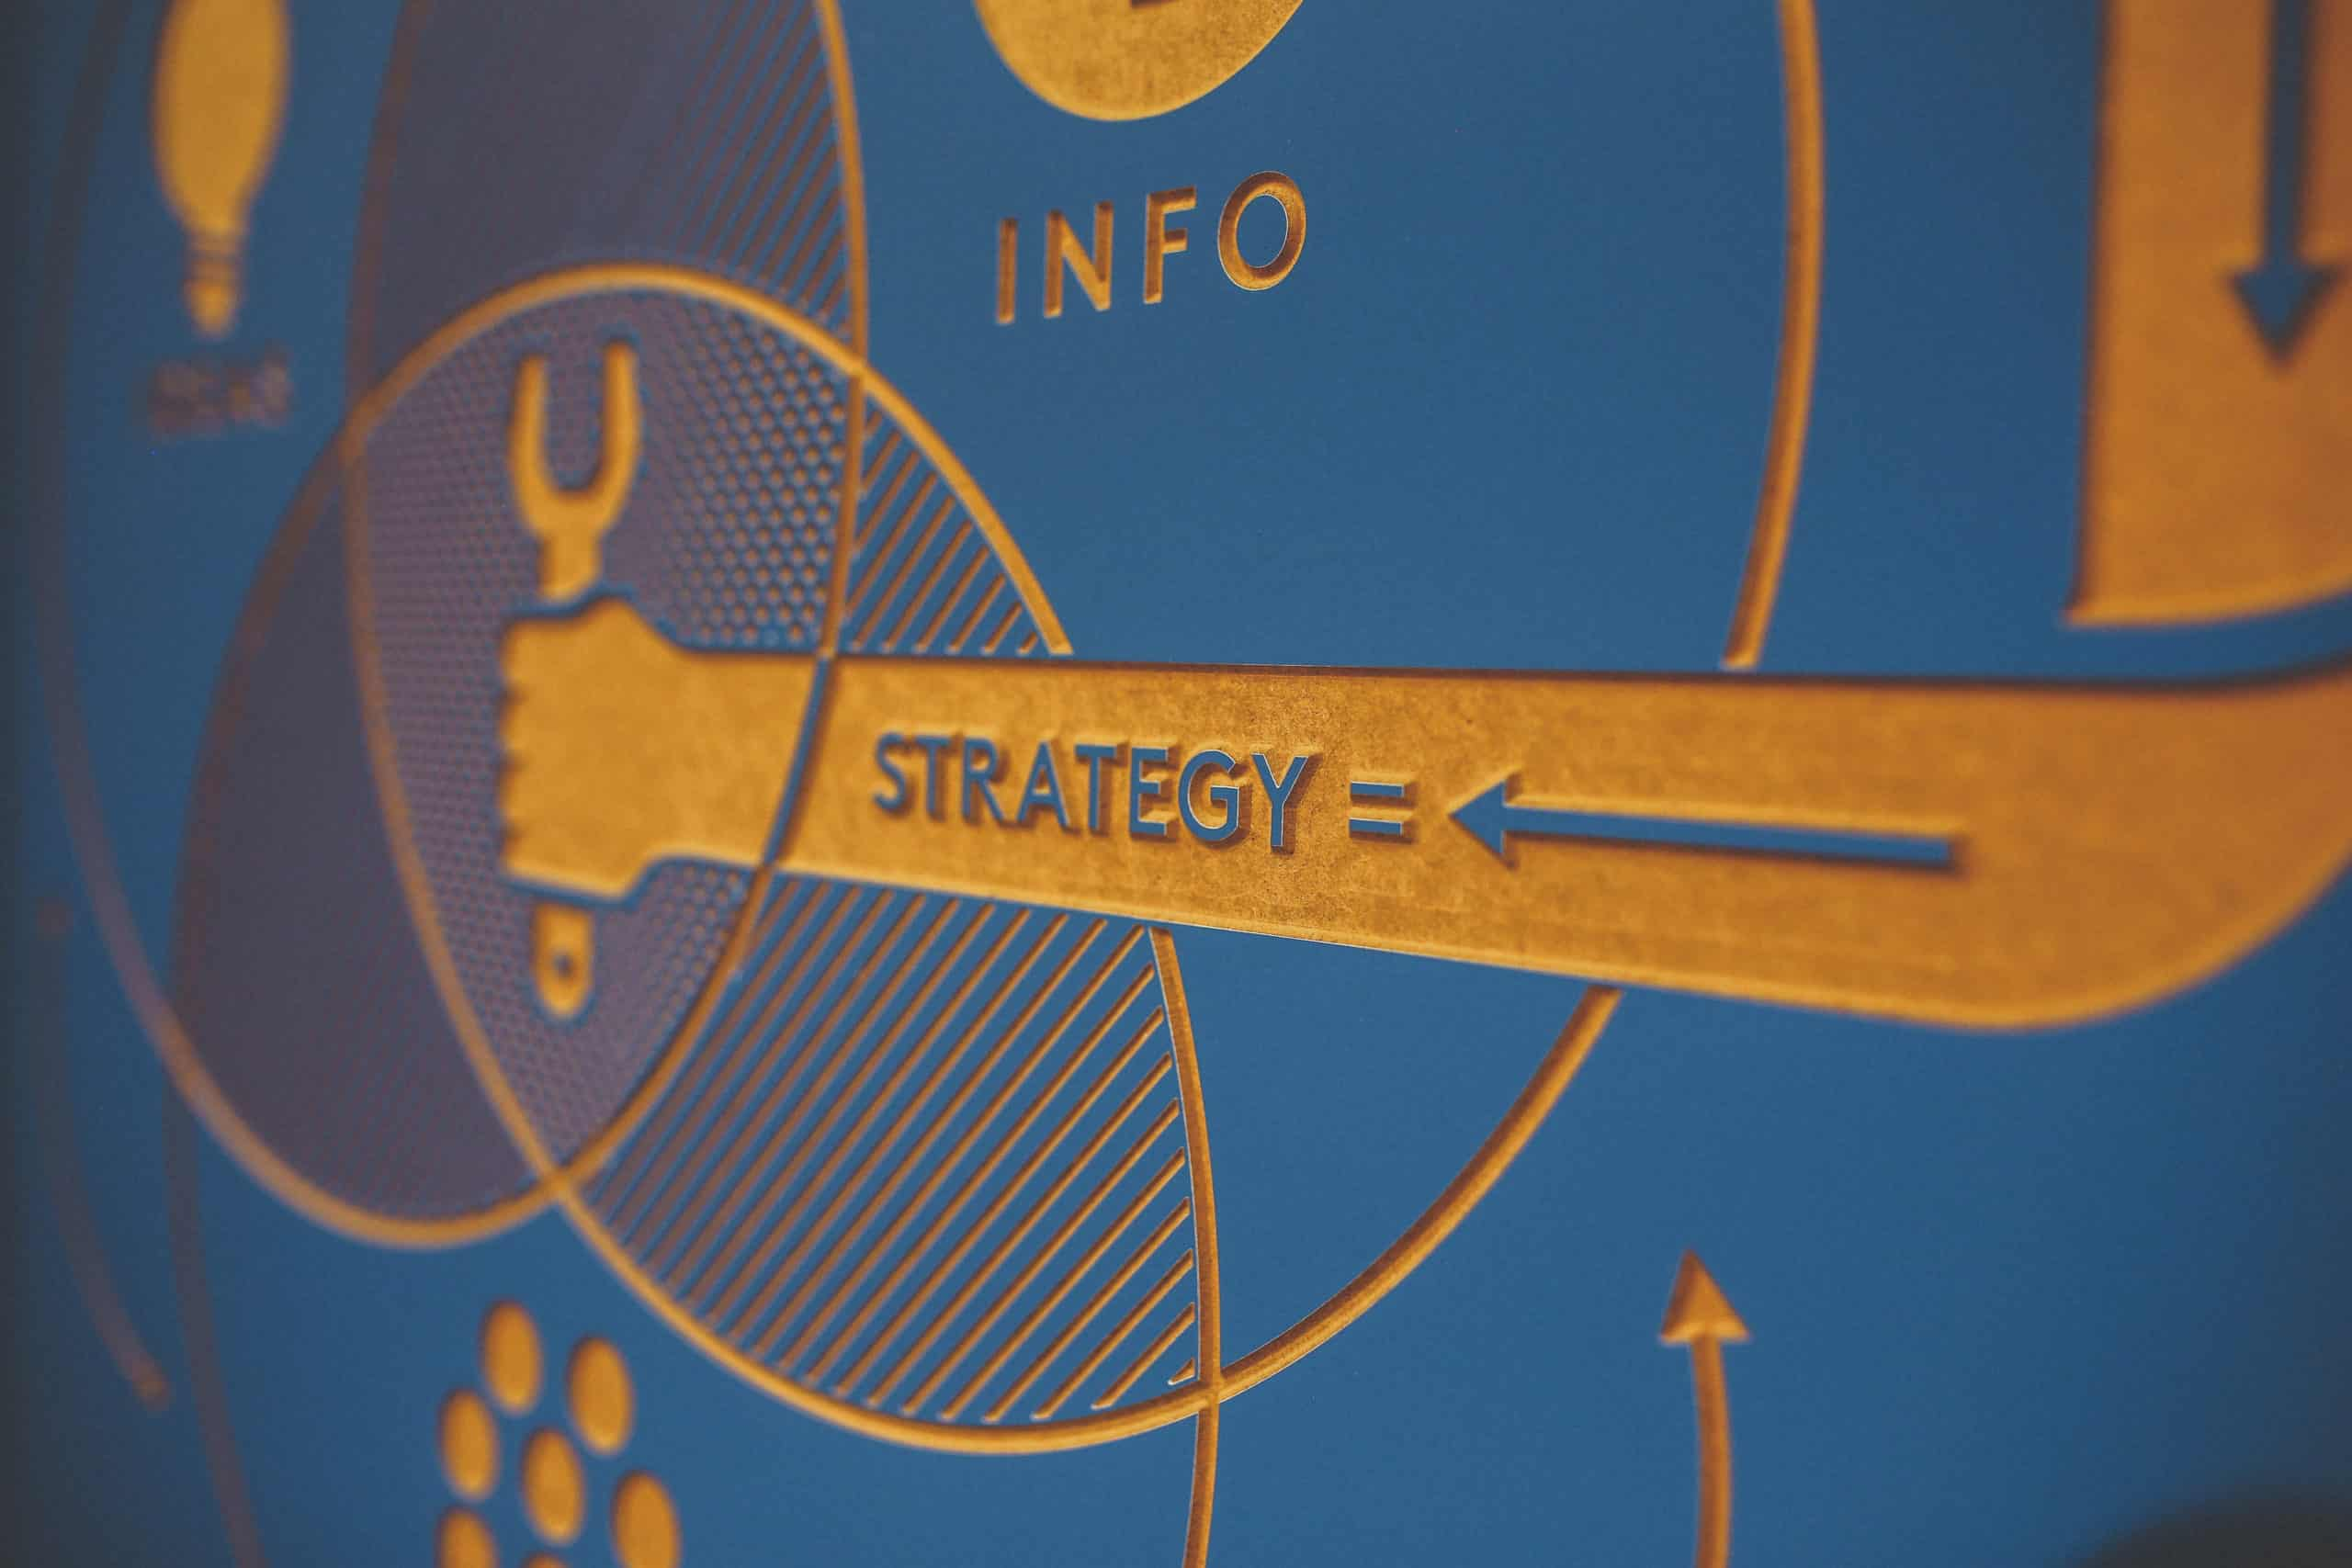 An infographic showing marketing strategy concepts.